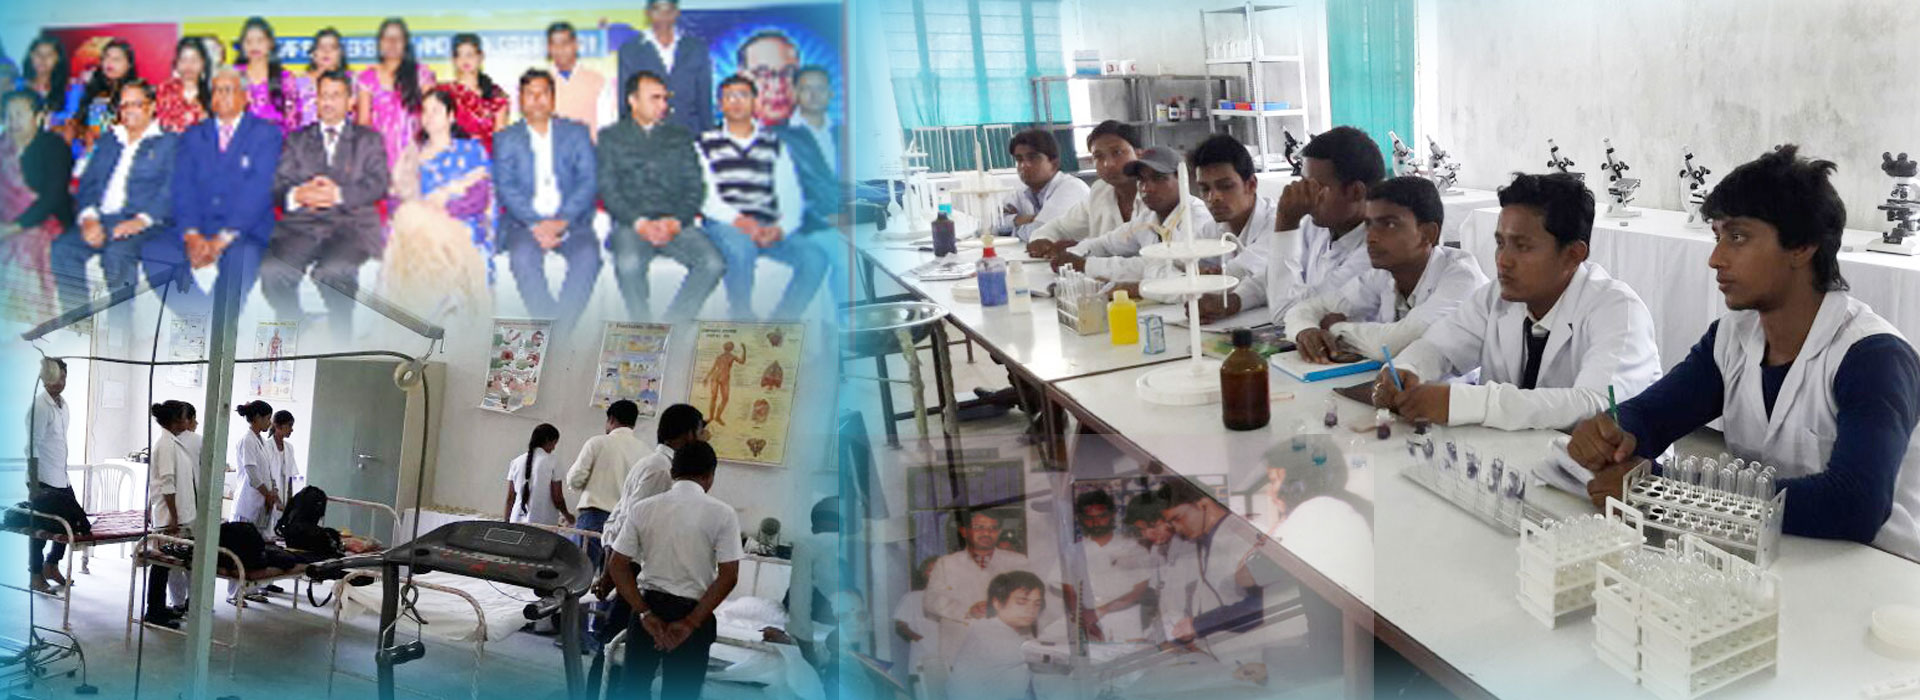 Best Paramedical Institute in Bihar, Paramedical Insititute in Bihar, Paramedical Institute in Patna, Best Paramedical Institute in North Bihar